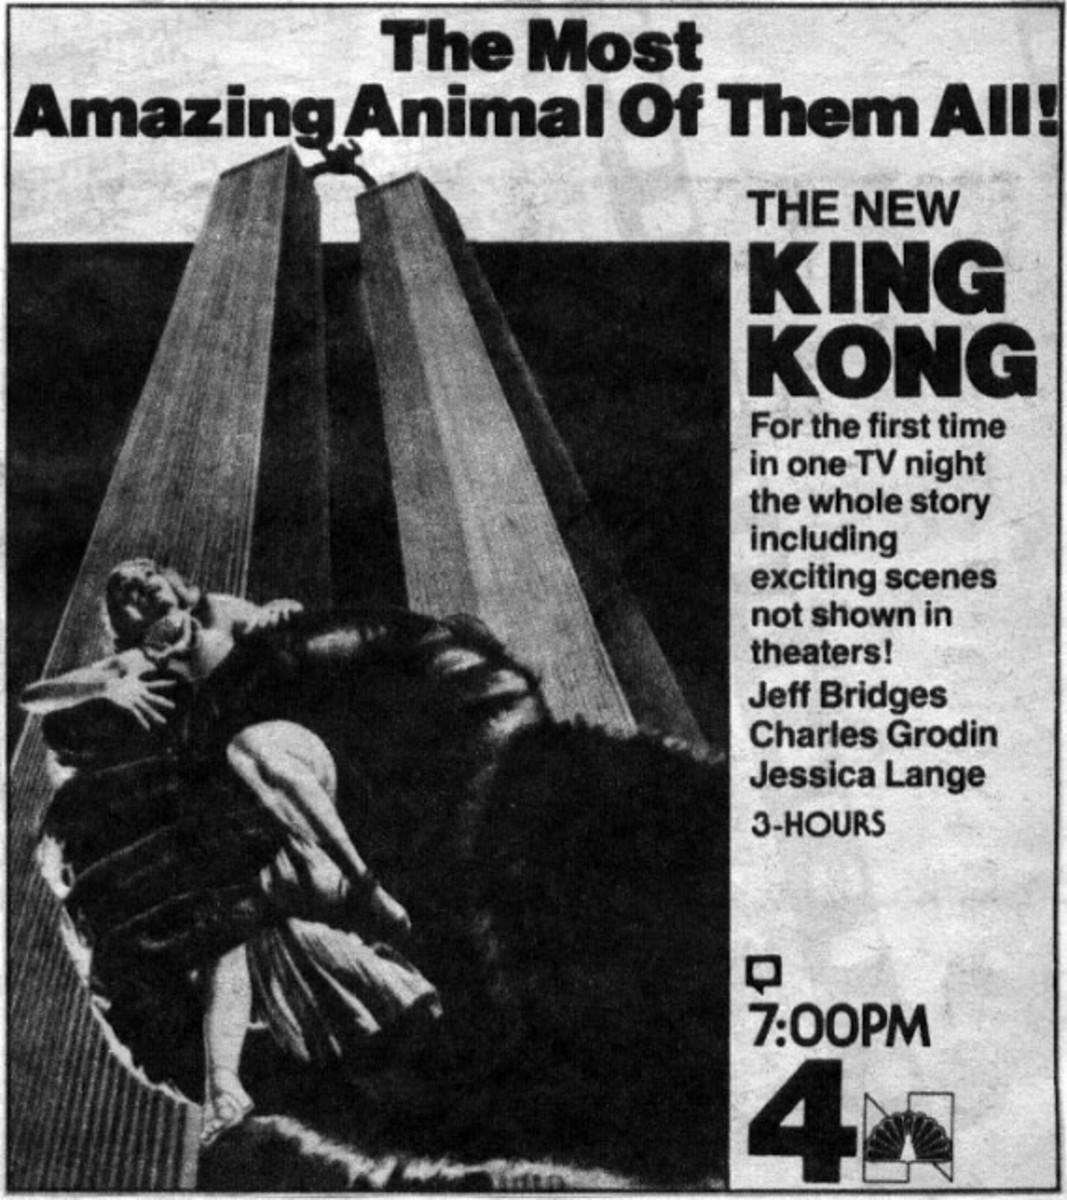 King Kong (1976) Is A Major Television Movie Event And Other Wonders Of The World